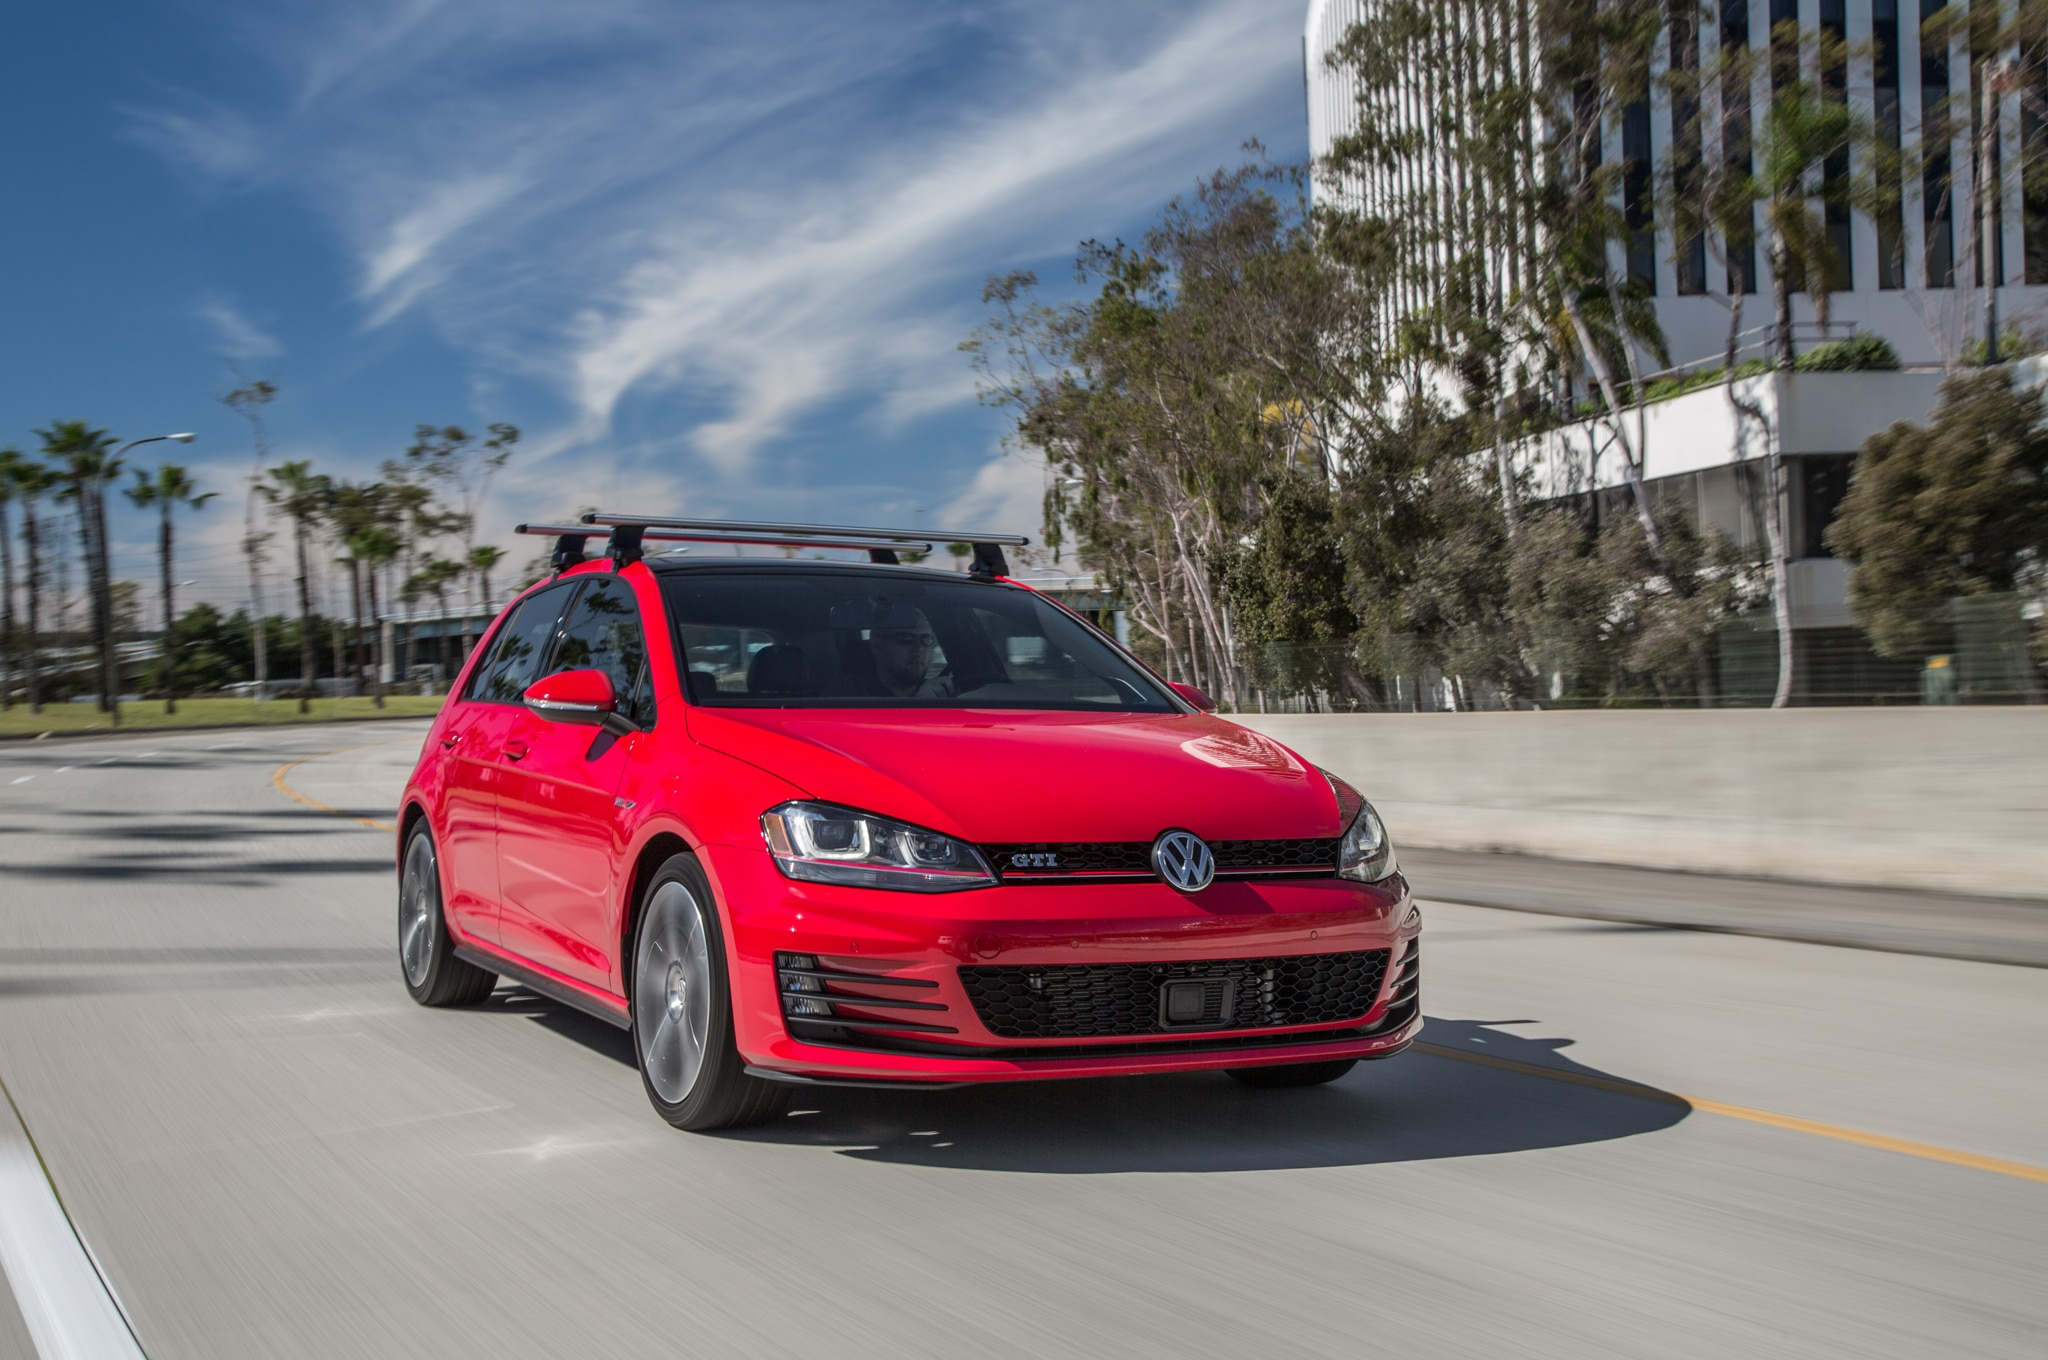 2015 Volkswagen Golf GTI S Performance Pack Review - Automobile